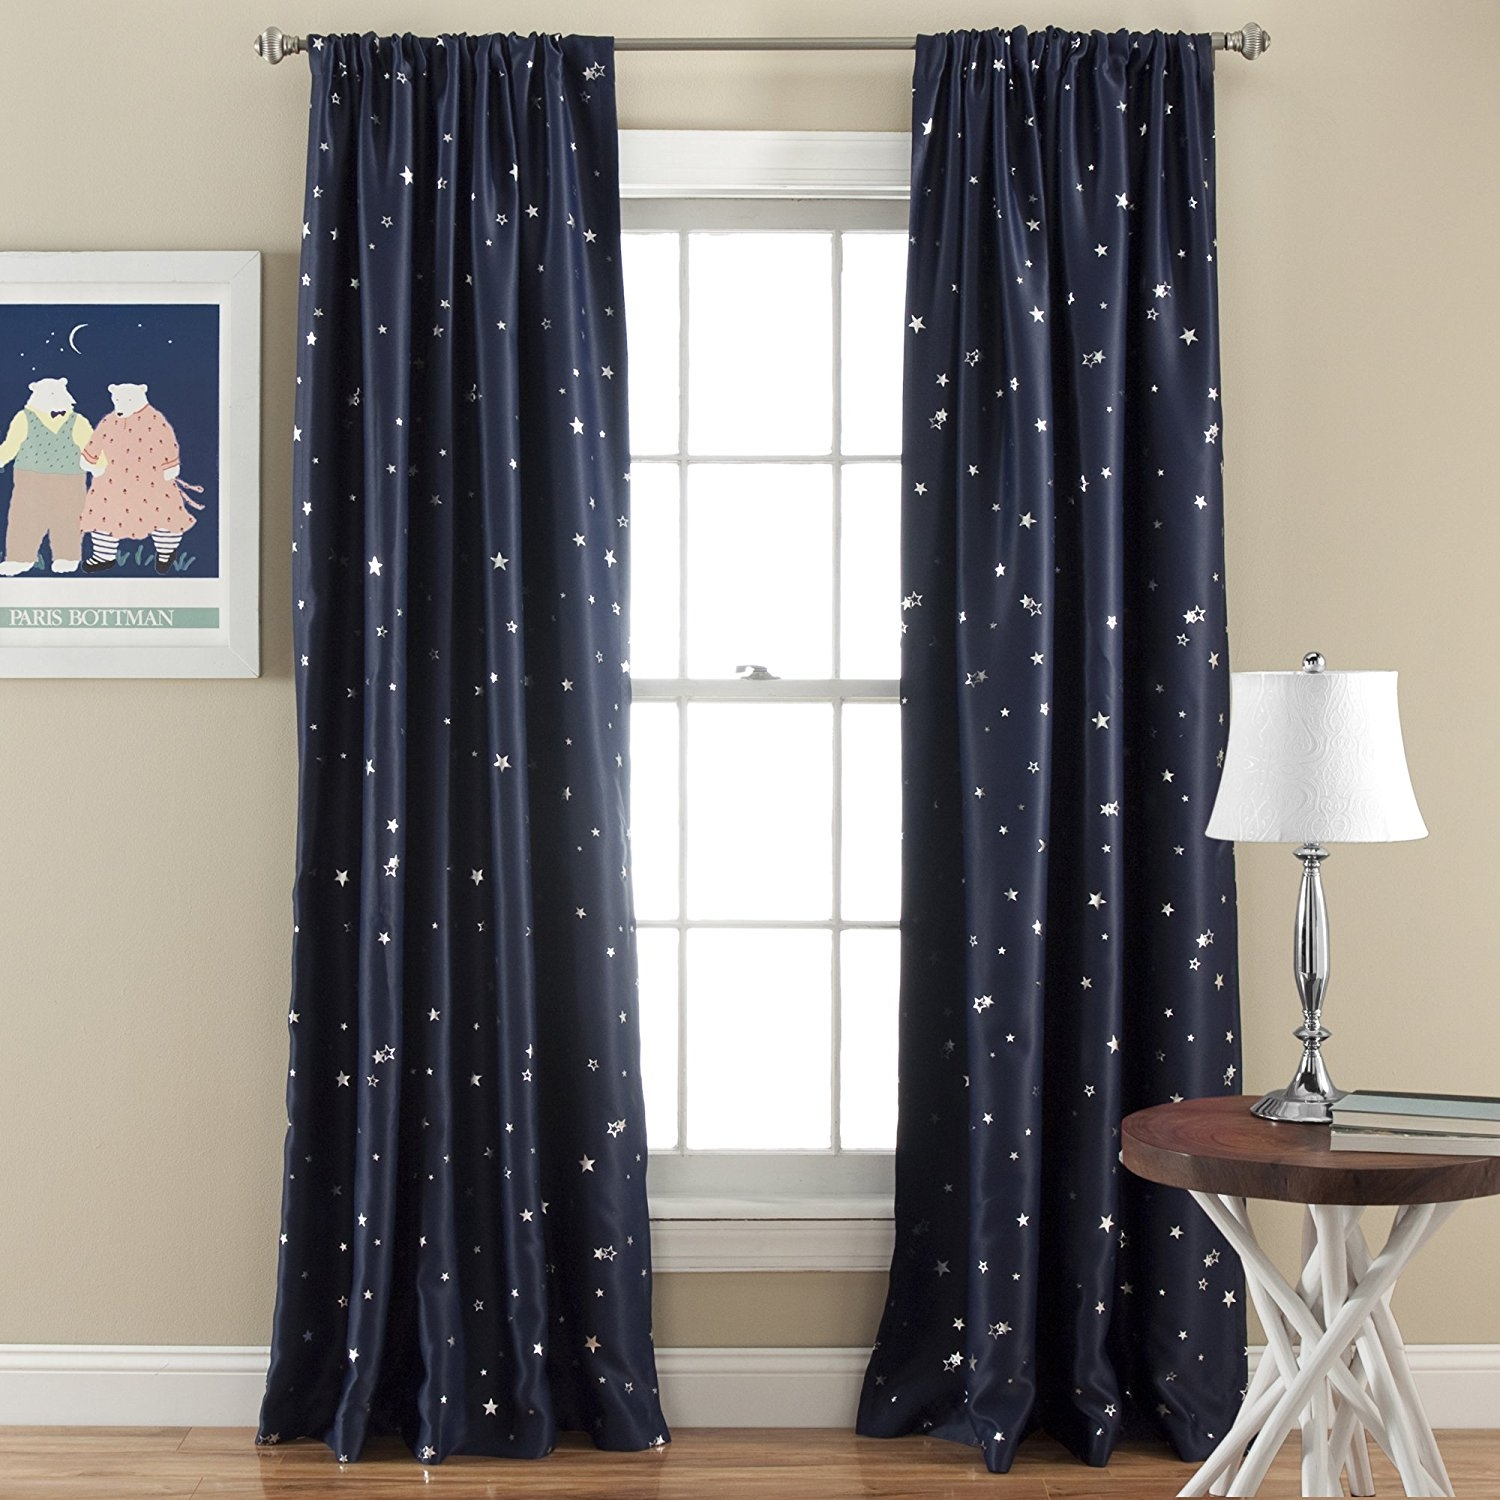 Online Get Cheap Thick Curtains Aliexpress Alibaba Group With Regard To Thick Bedroom Curtains (View 11 of 15)